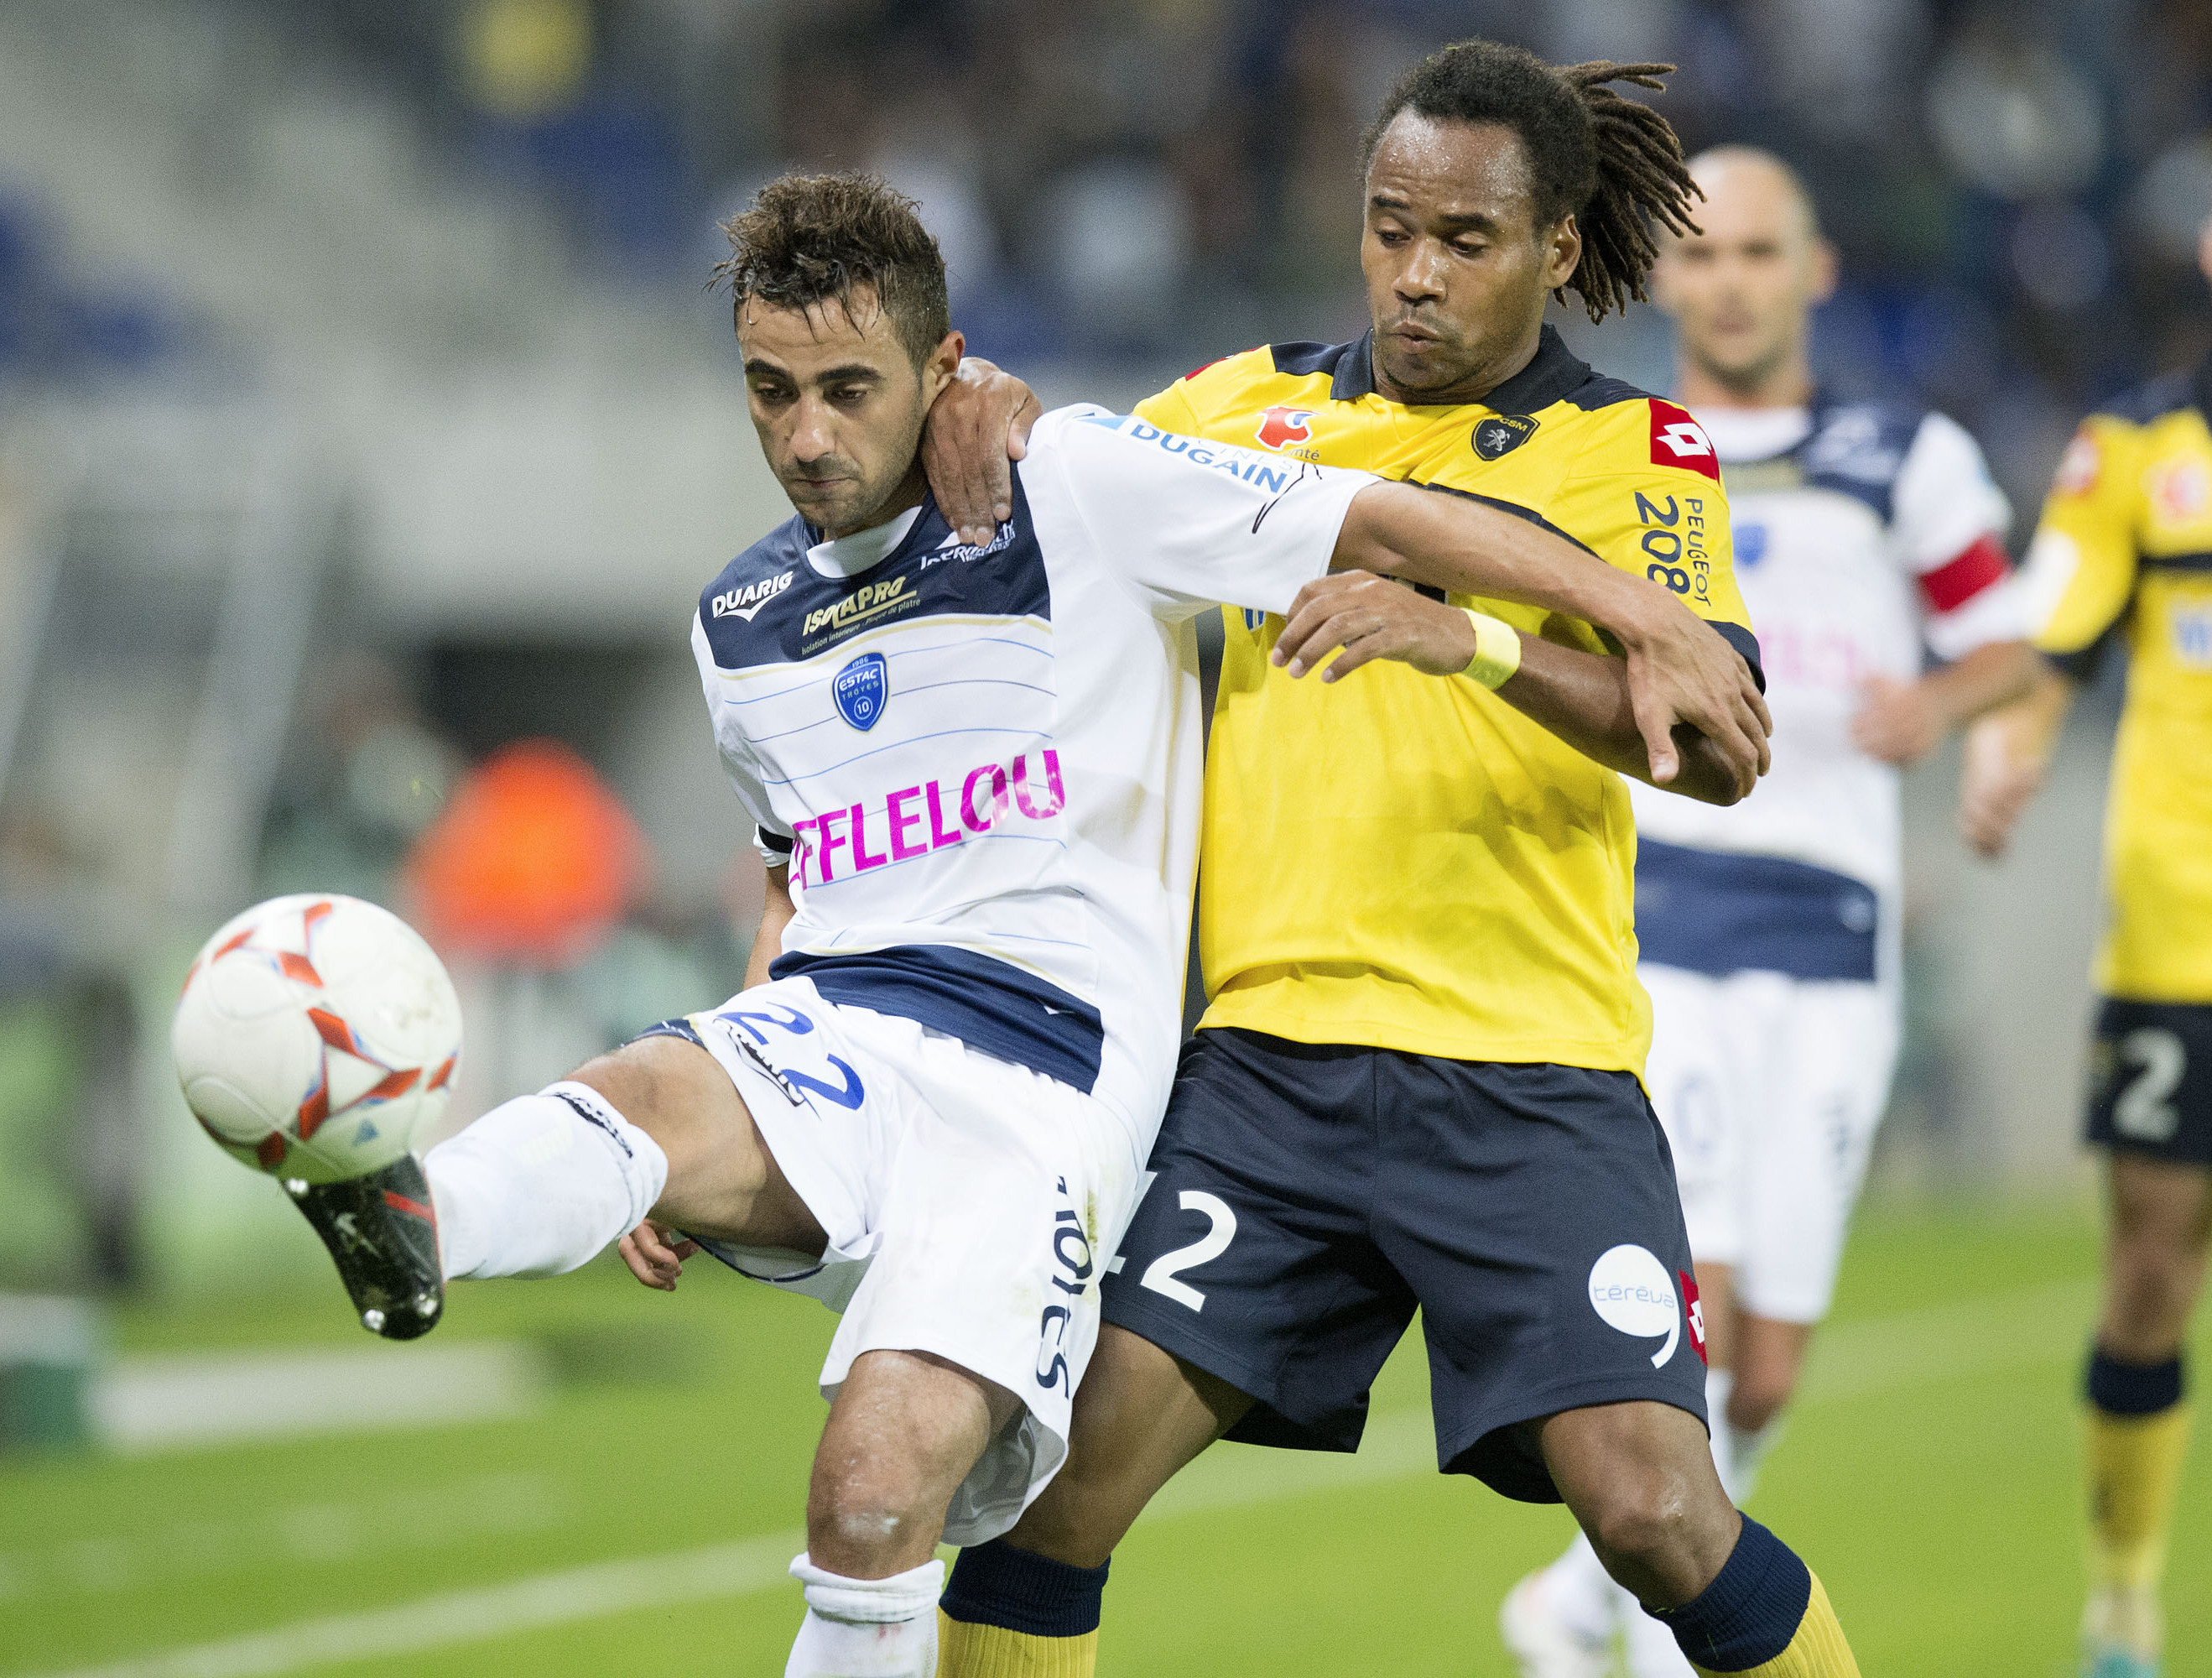 Match FC Sochaux vs ESTAC Troyes en direct streaming live